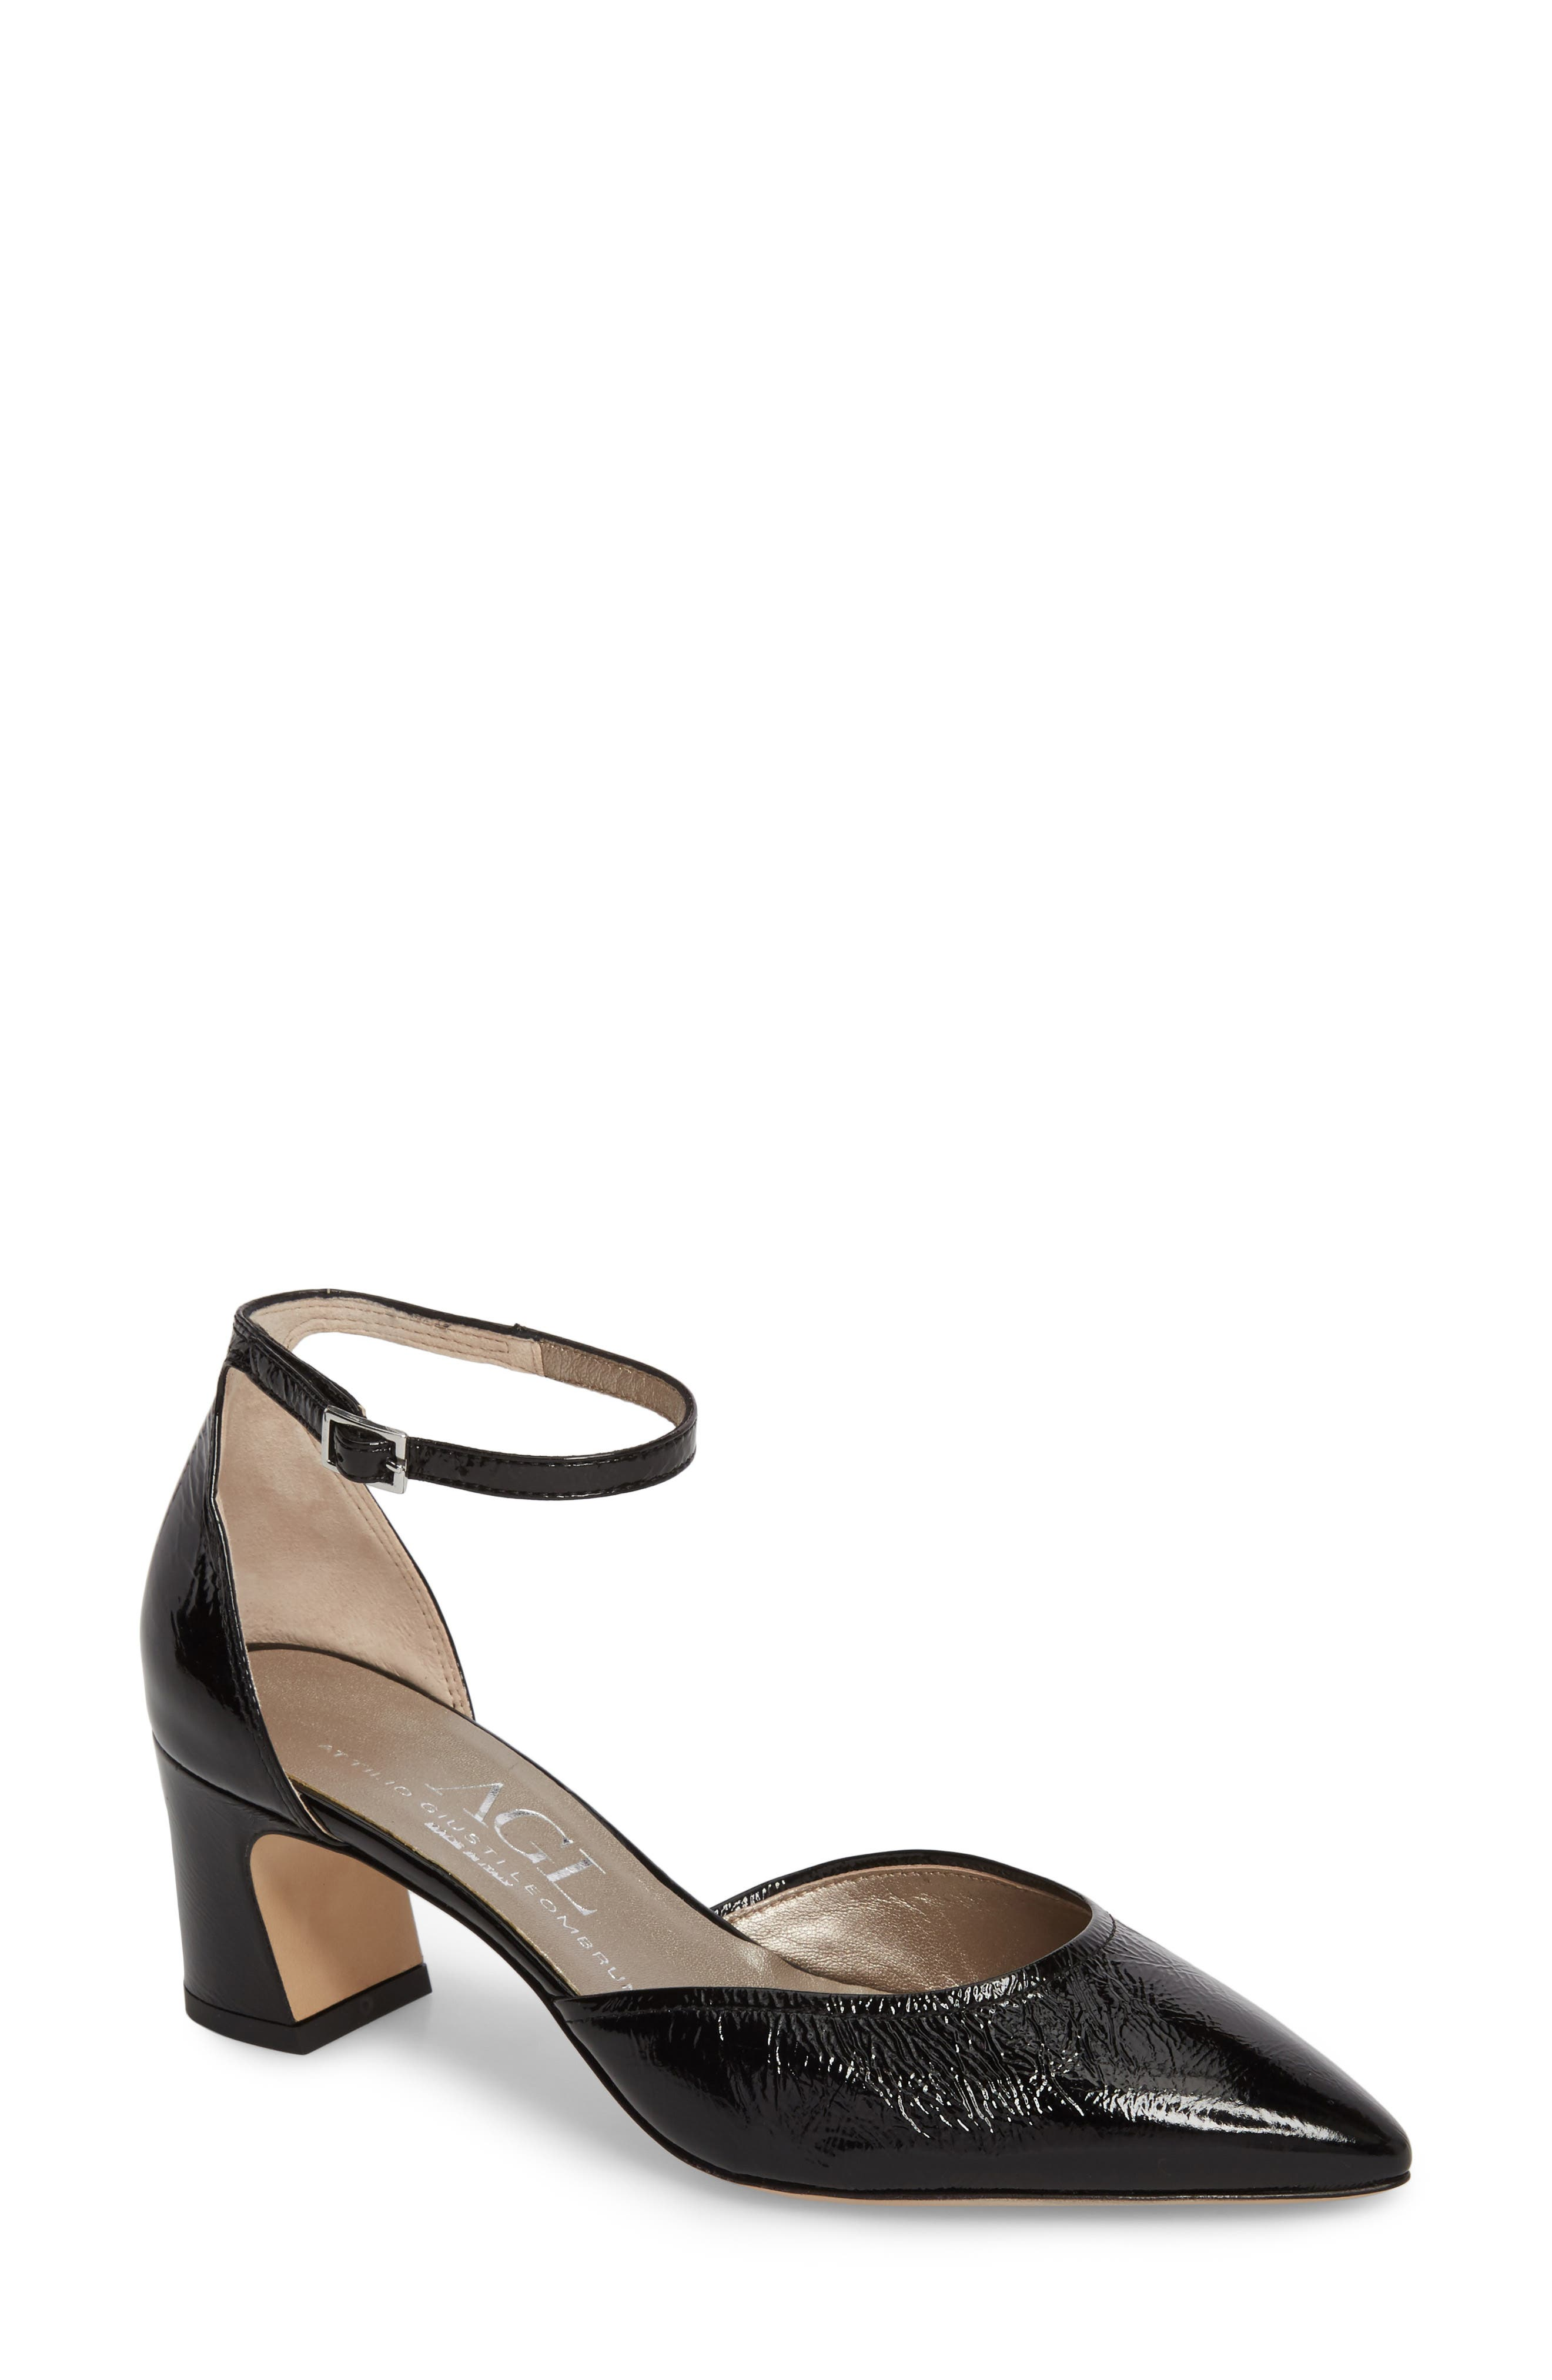 d'Orsay Ankle Strap Pump,                         Main,                         color, BLACK GLAMMY LEATHER